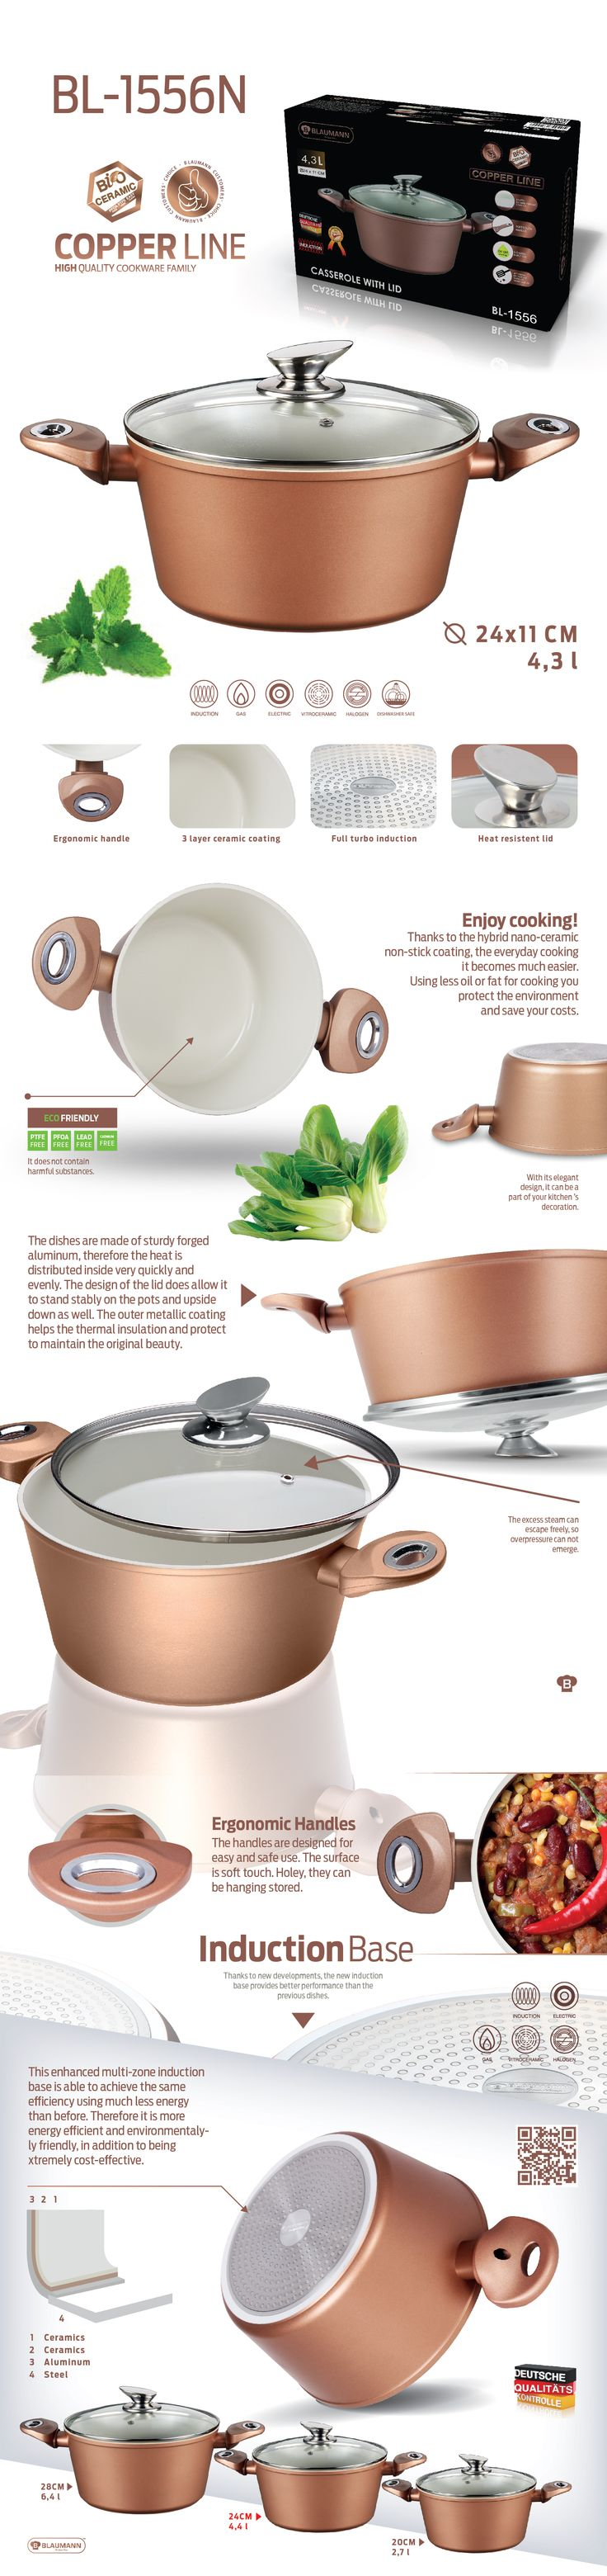 Casserole with lid - Copper Line (20cm / 24cm / 28cm) is high quality cookware and is coated with a hybrid nano-ceramic non-stick coating, for easier every cooking